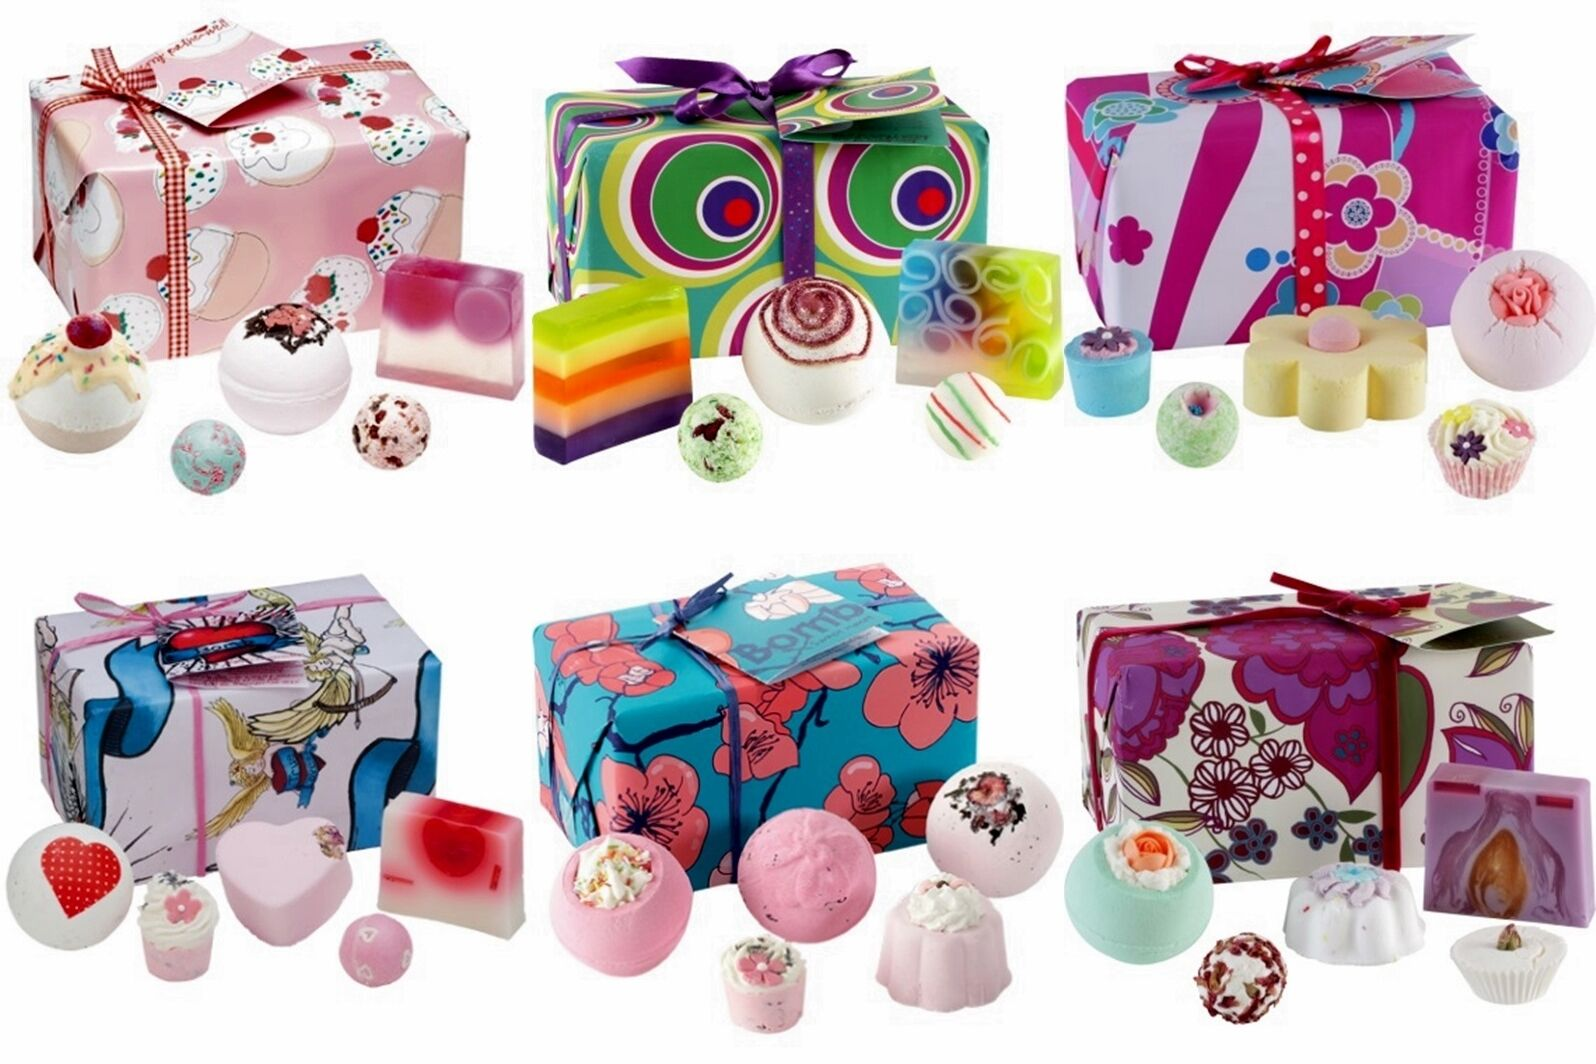 NEW * BOMB COSMETICS * BATH PAMPER GIFT SETS PRE WRAPPED ALL WITH FREE POSTAGE